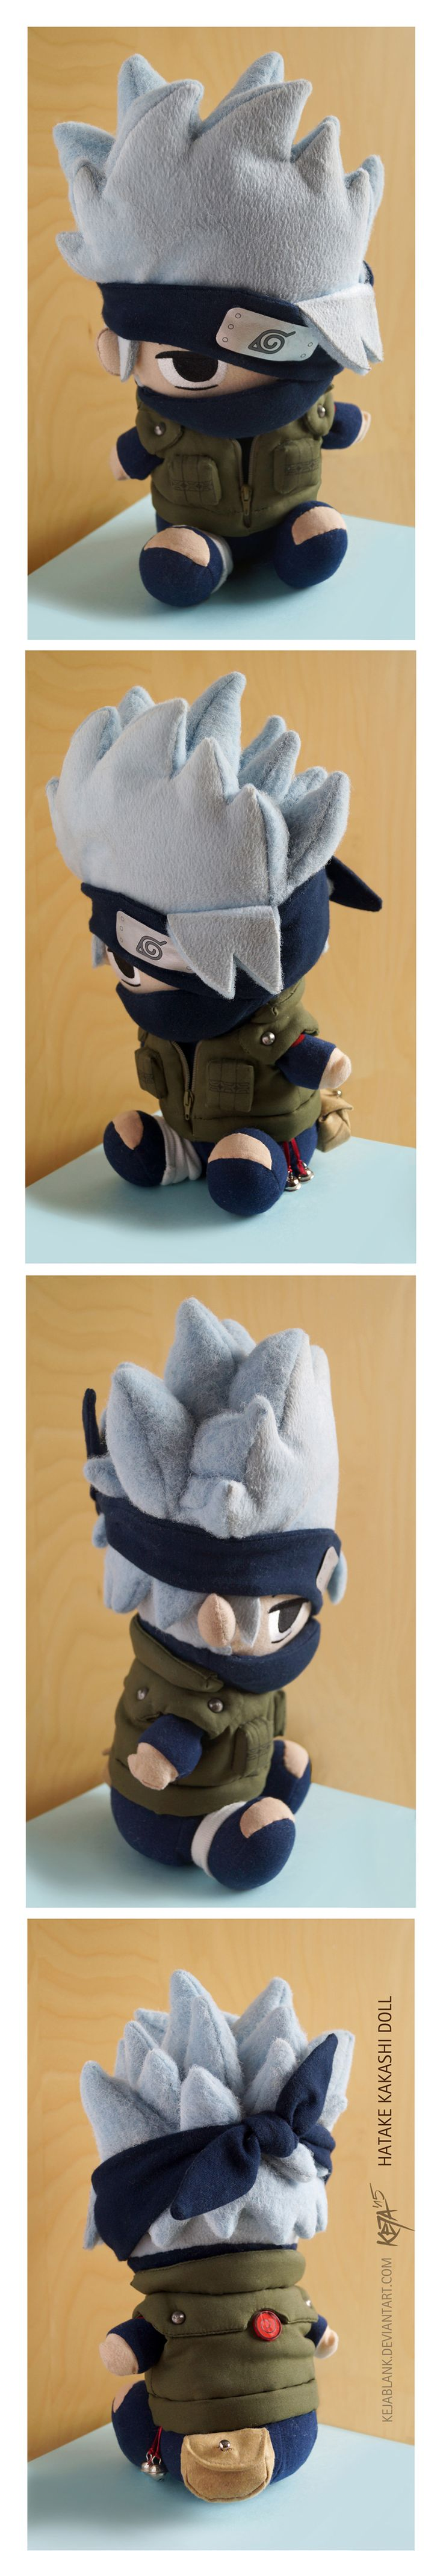 Kakashi doll plush plushie by Keja Blank Art